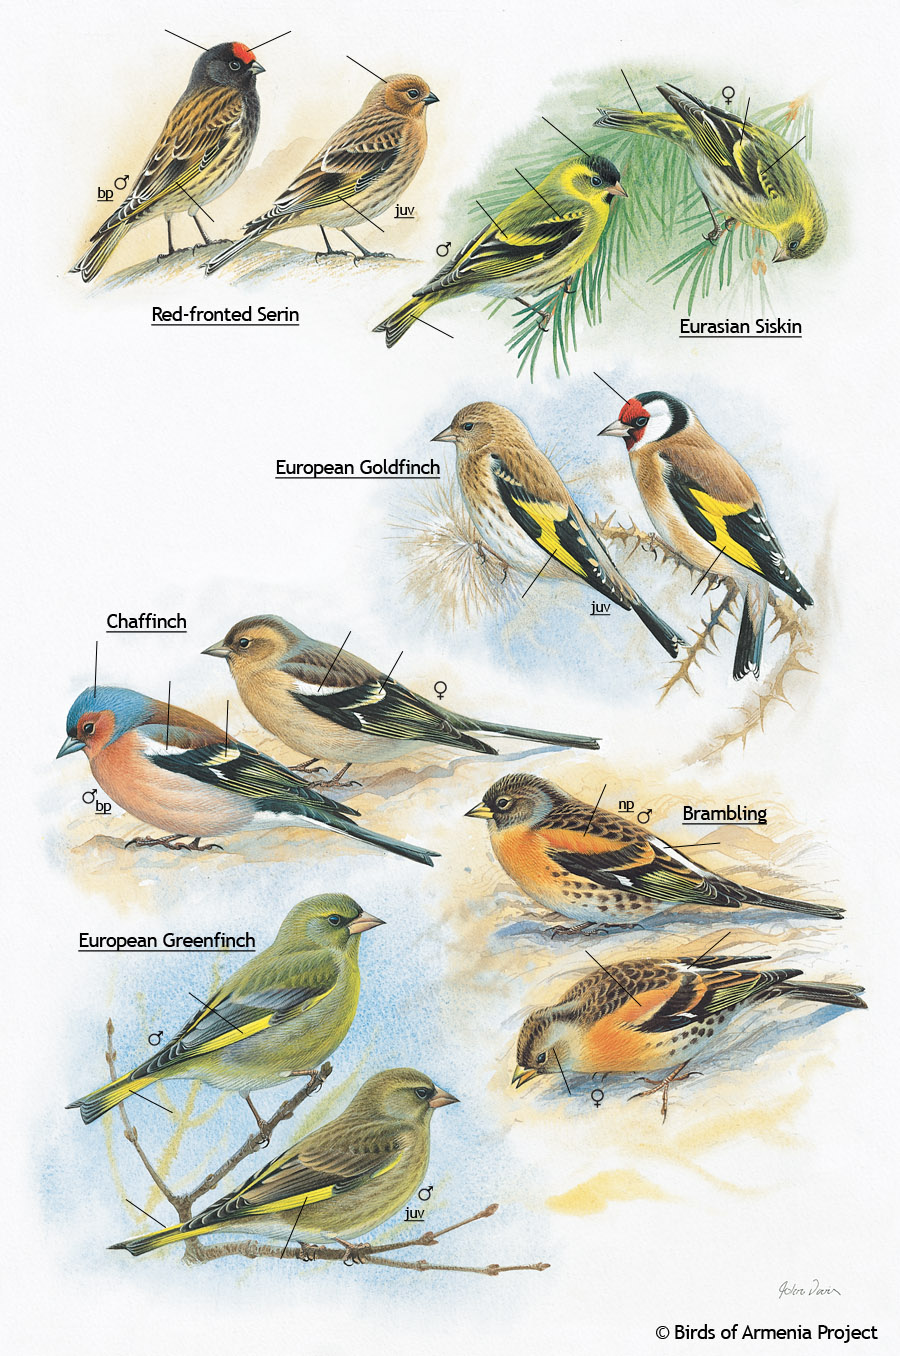 Serins, Siskins, Goldfinches, Chaffinches, Greenfinches and Bramblings